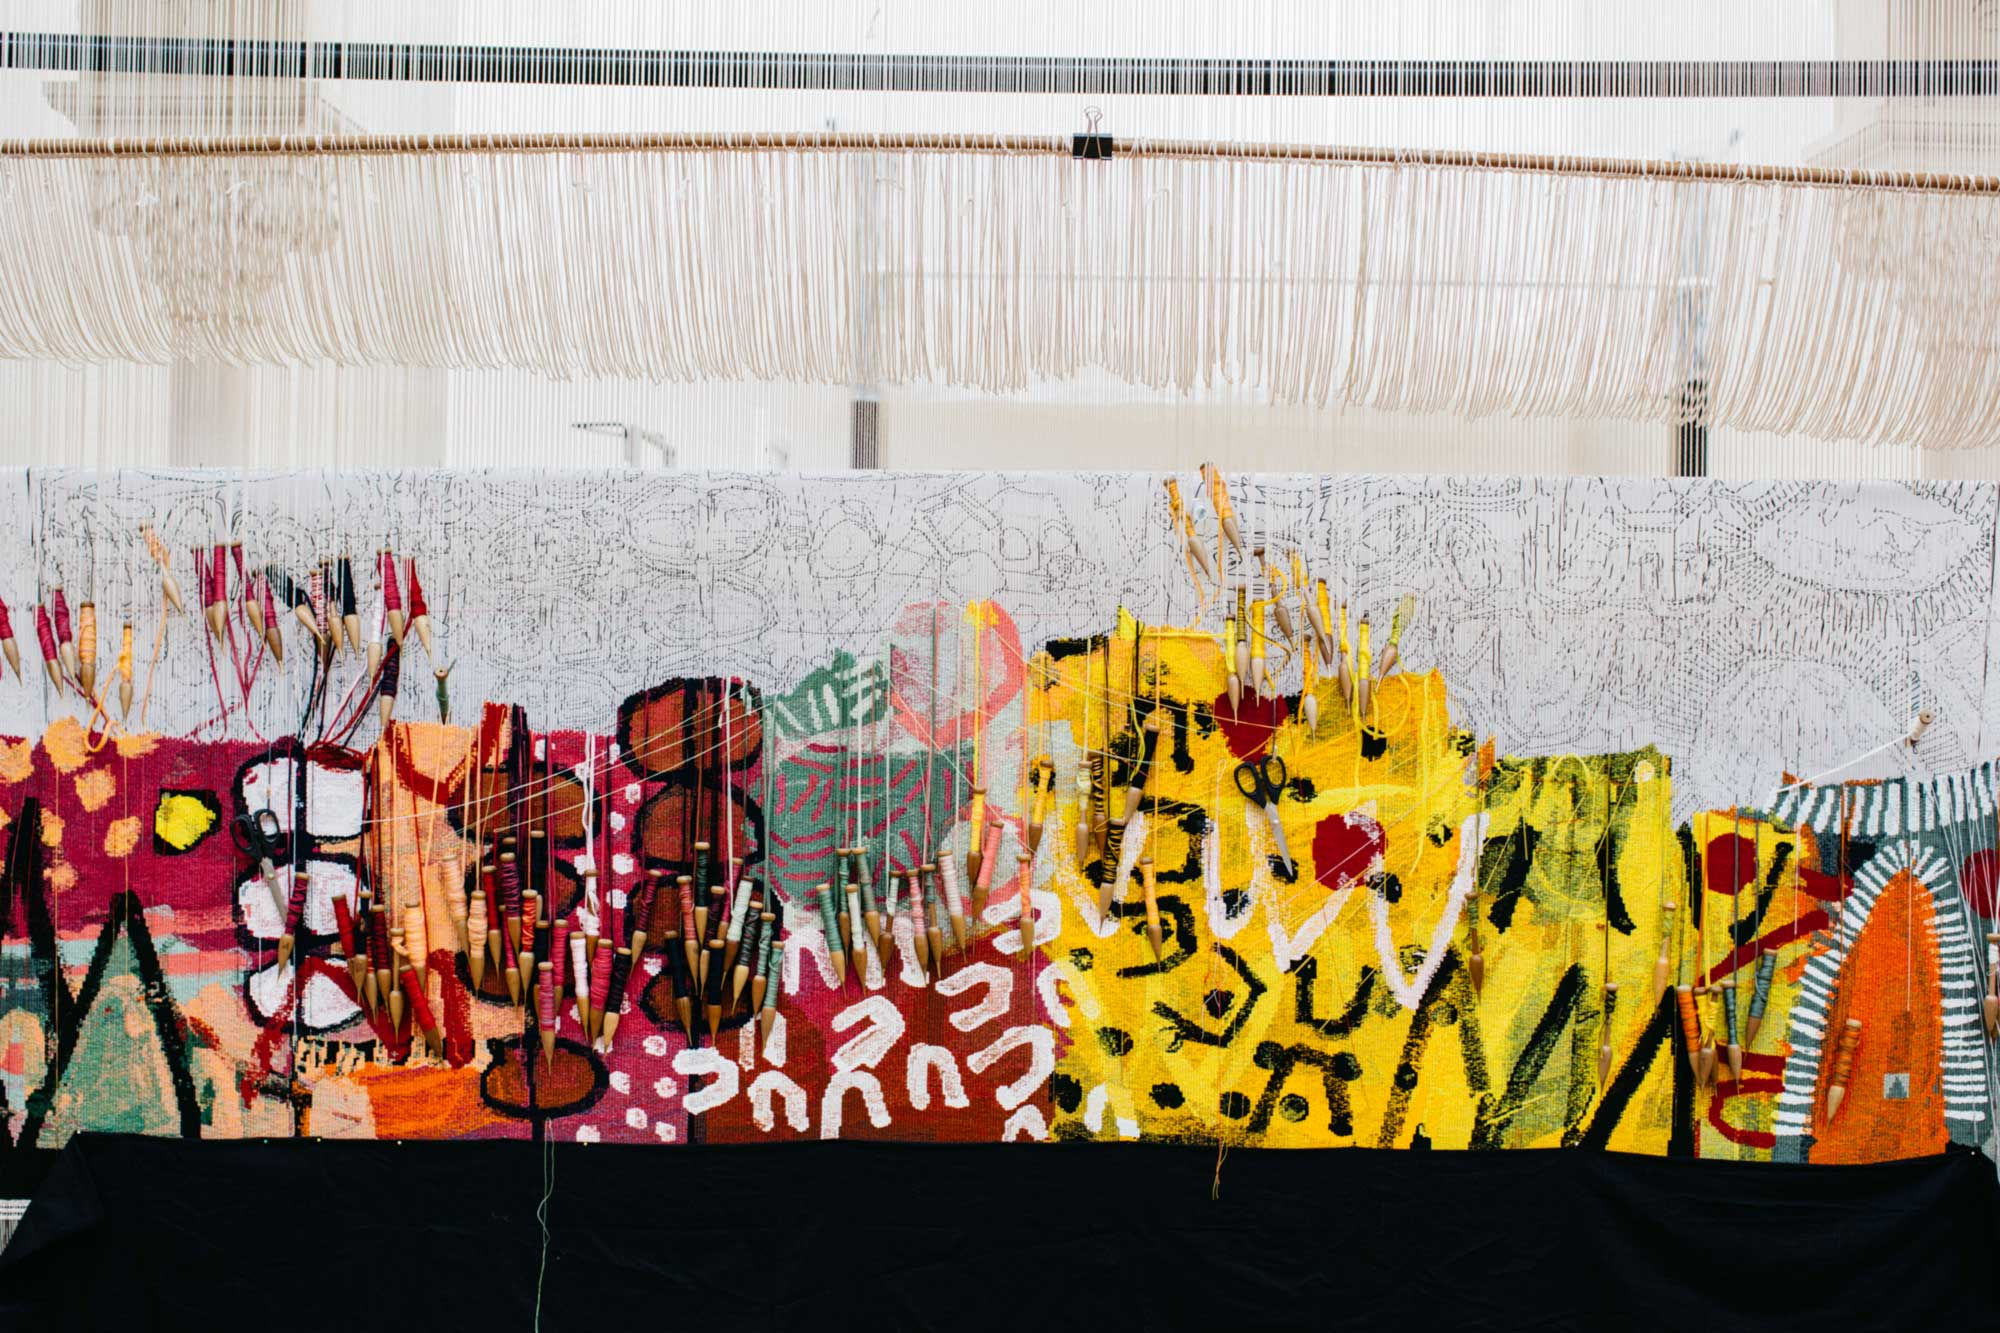 On the loom: 'The Royal Harvest' tapestry in progress. Photo: Marie-Luise Skibbe